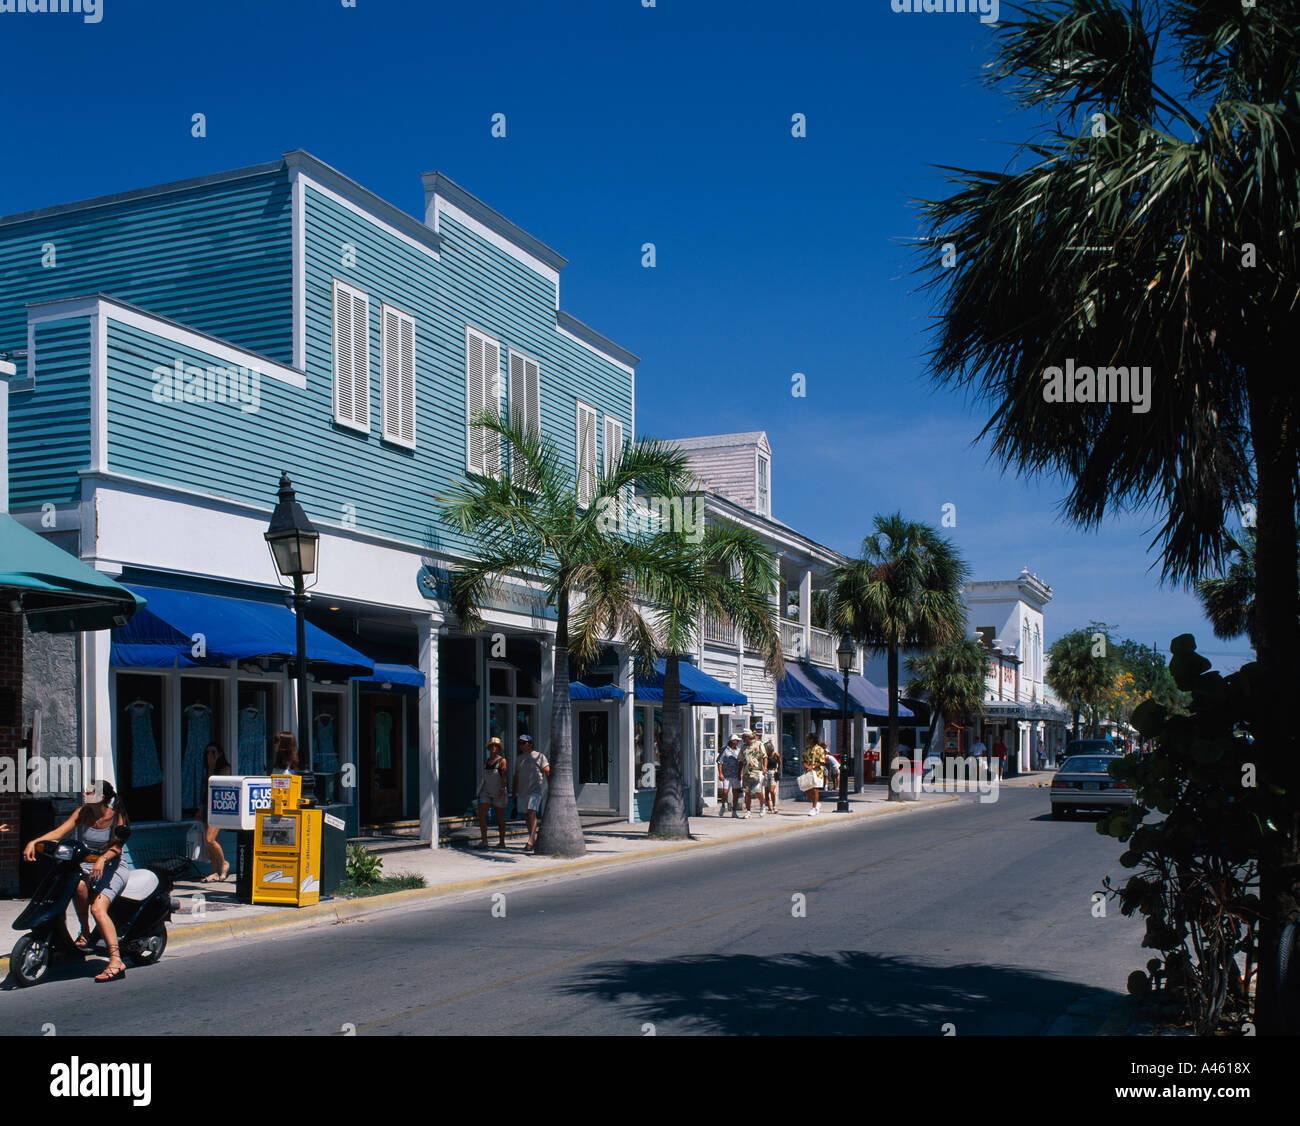 USA Florida Keys Key West Duval Street Palm Lined Road With Timber Frame  Pastel Colour Painted Shops